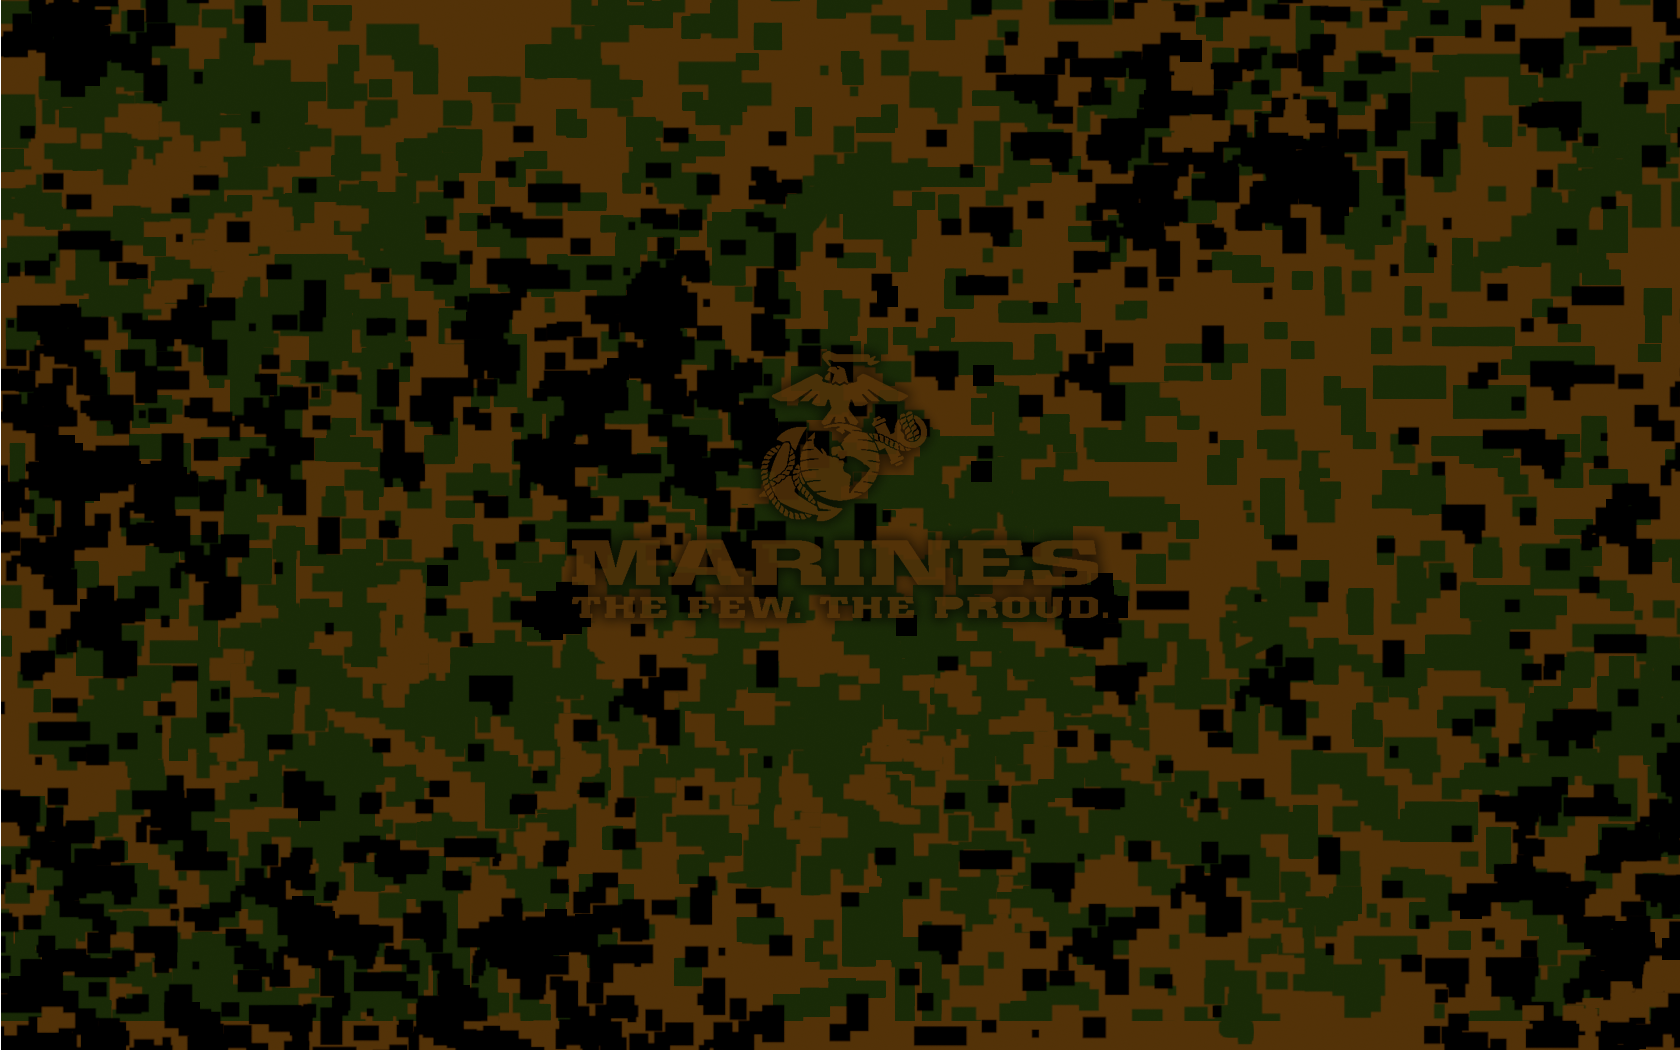 usmc camo download army gallery wallpaper full hd wallpapers wallpaper 1680x1050